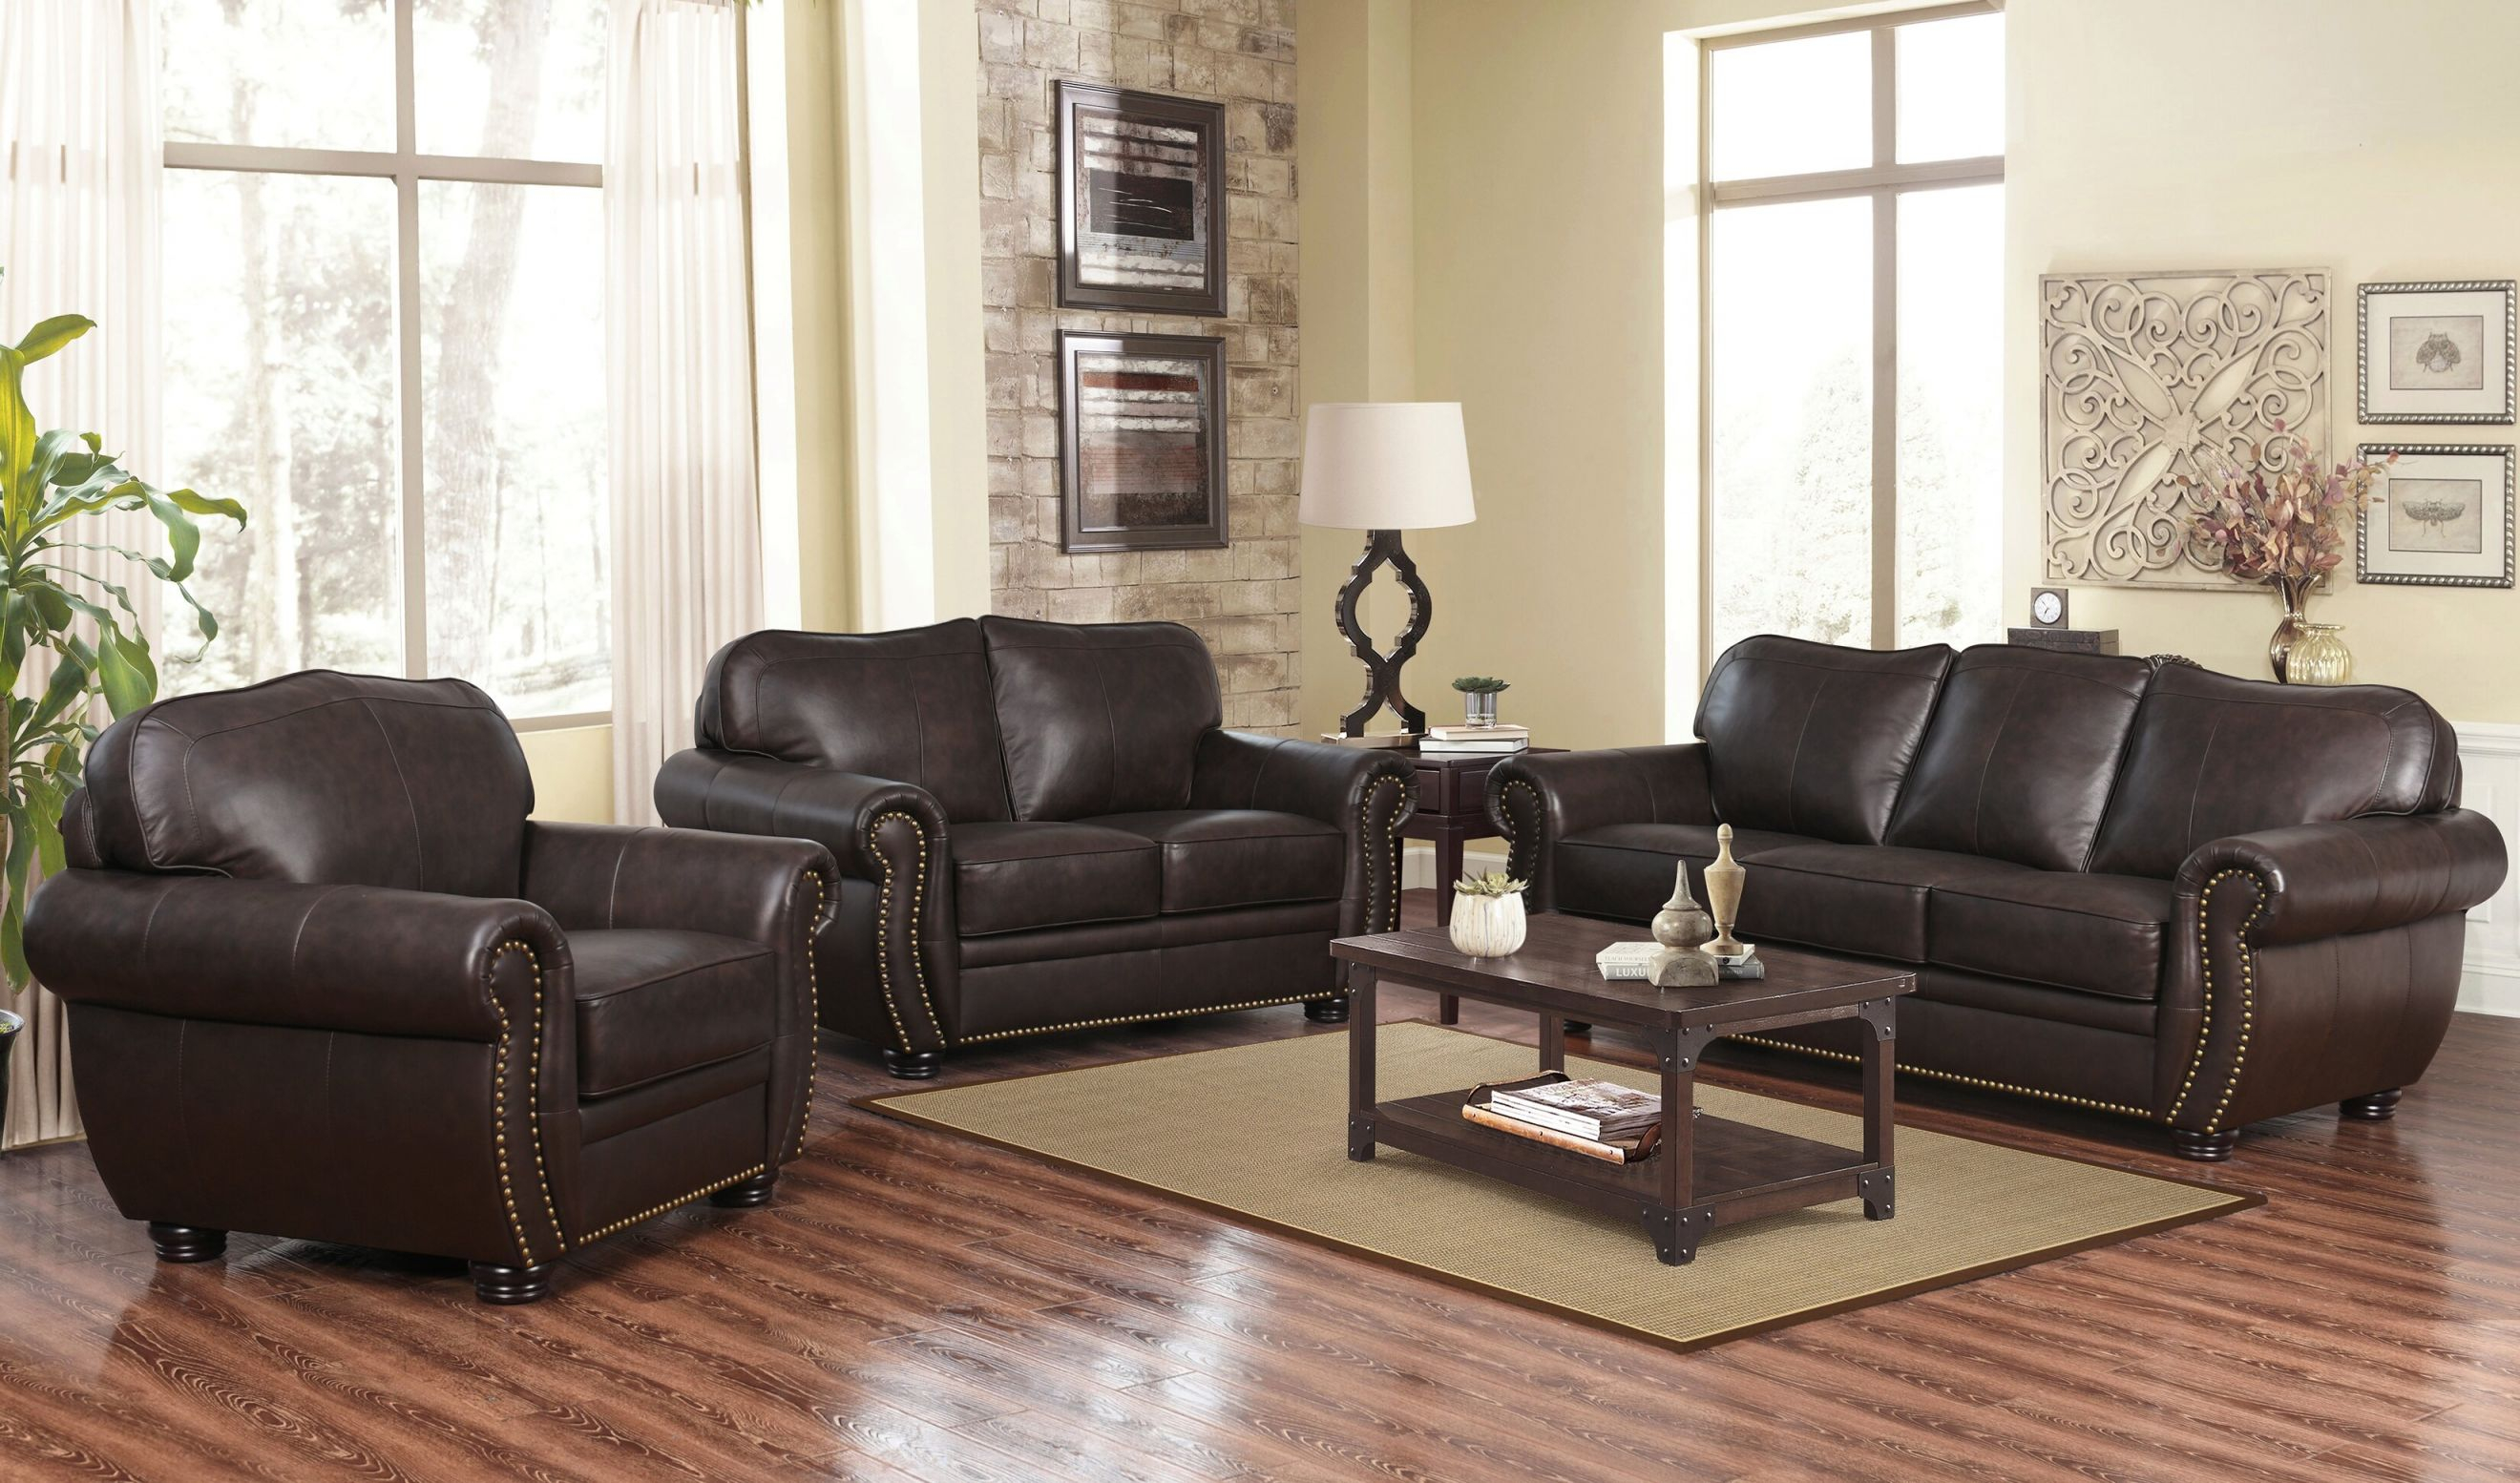 Hotchkiss 3 Piece Leather Living Room Set in Leather Living Room Sets